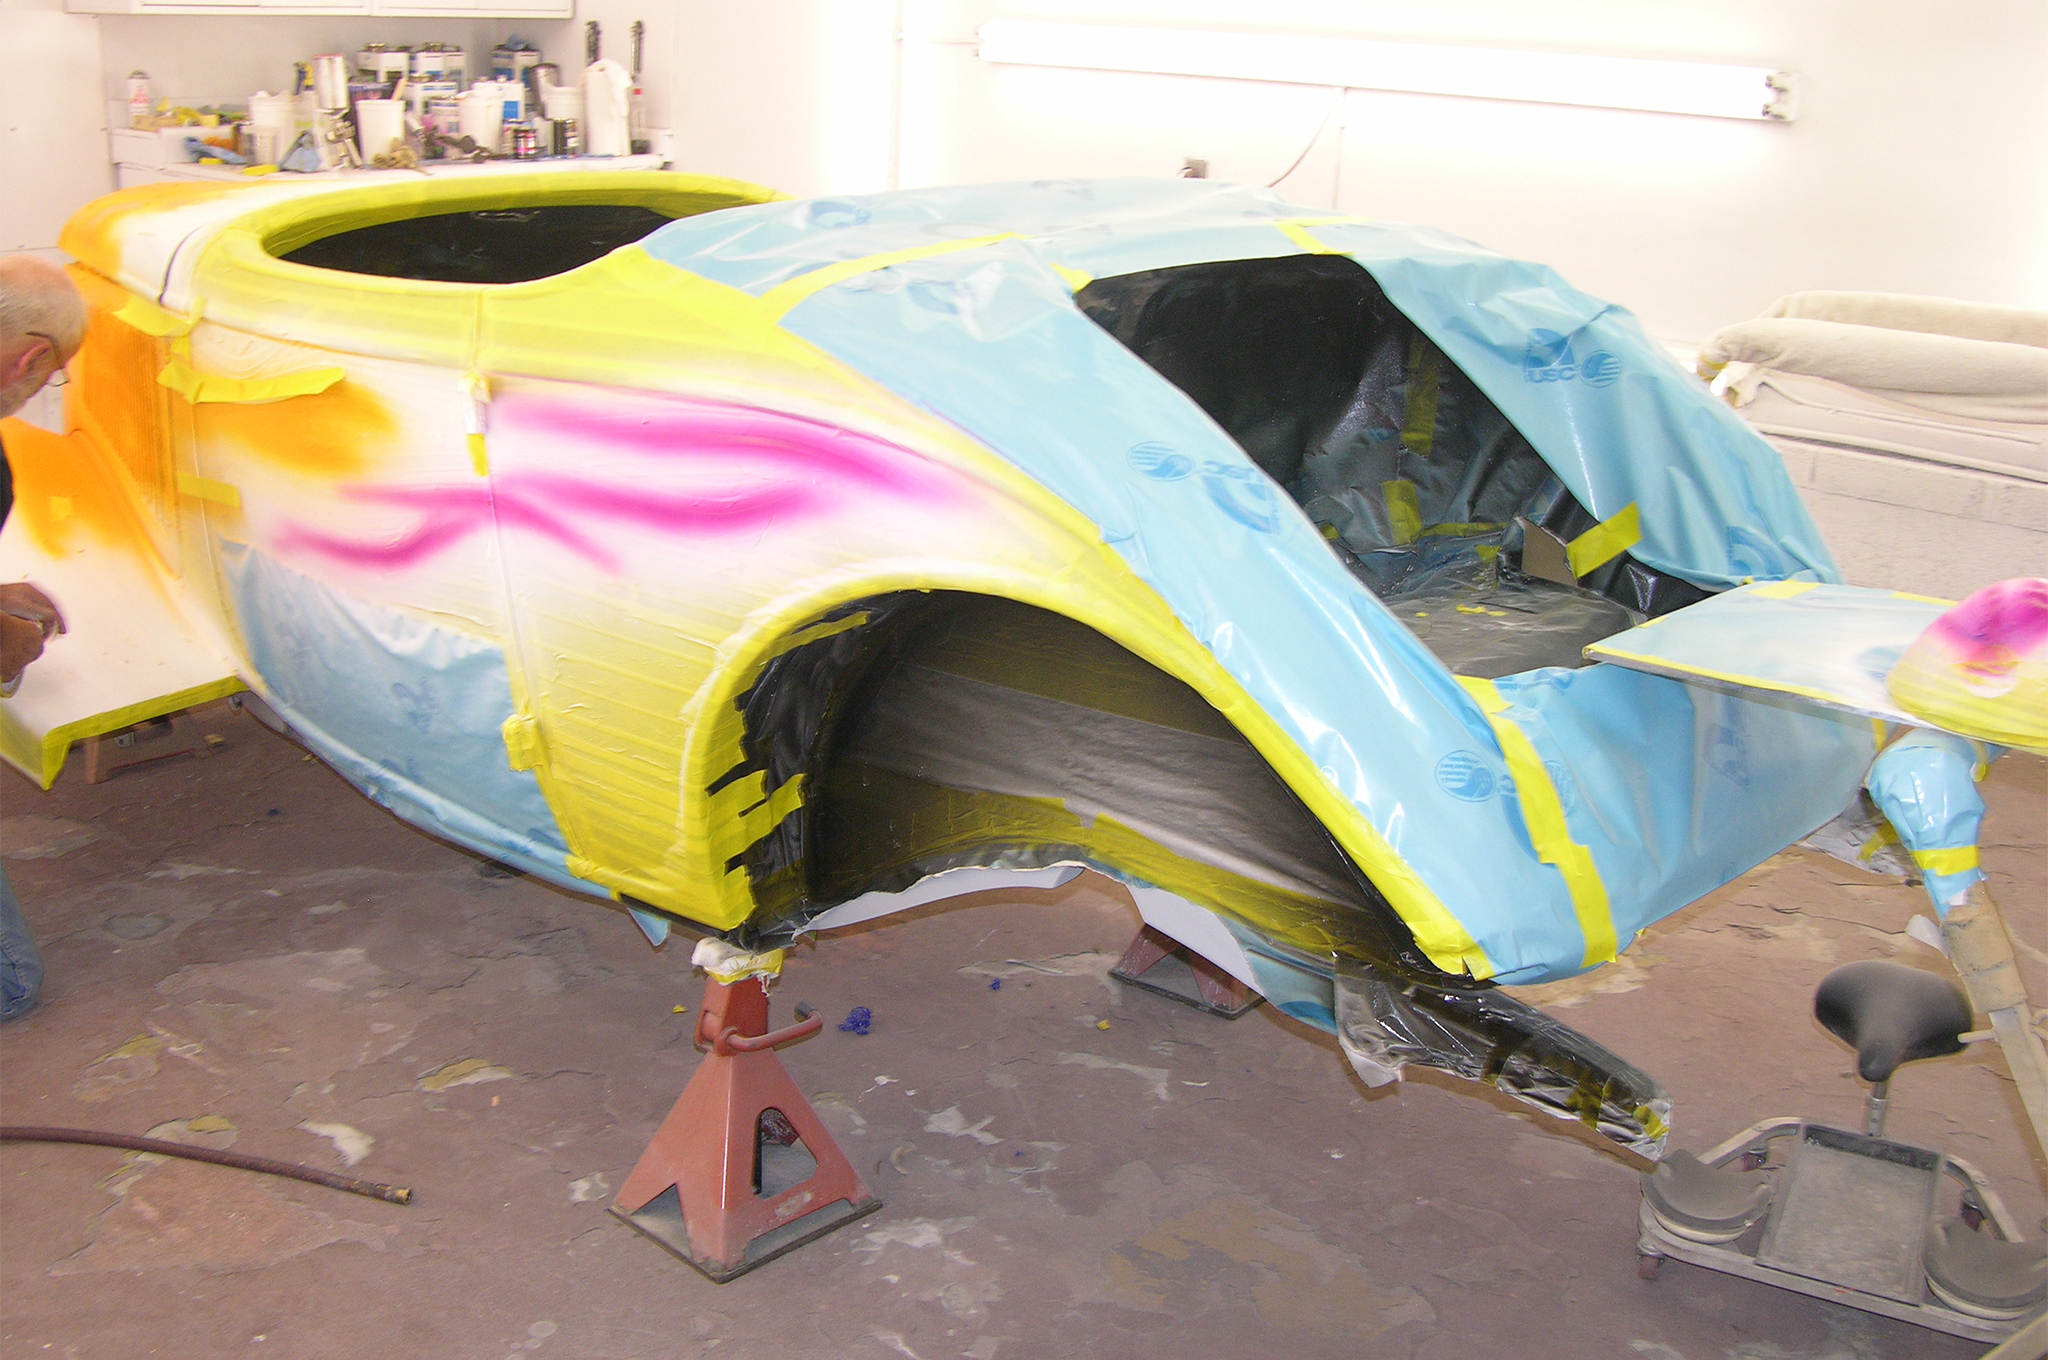 The final magenta of the flame tips has been shot, and once the tape and paper are removed, the car will be ready to be cleared out.